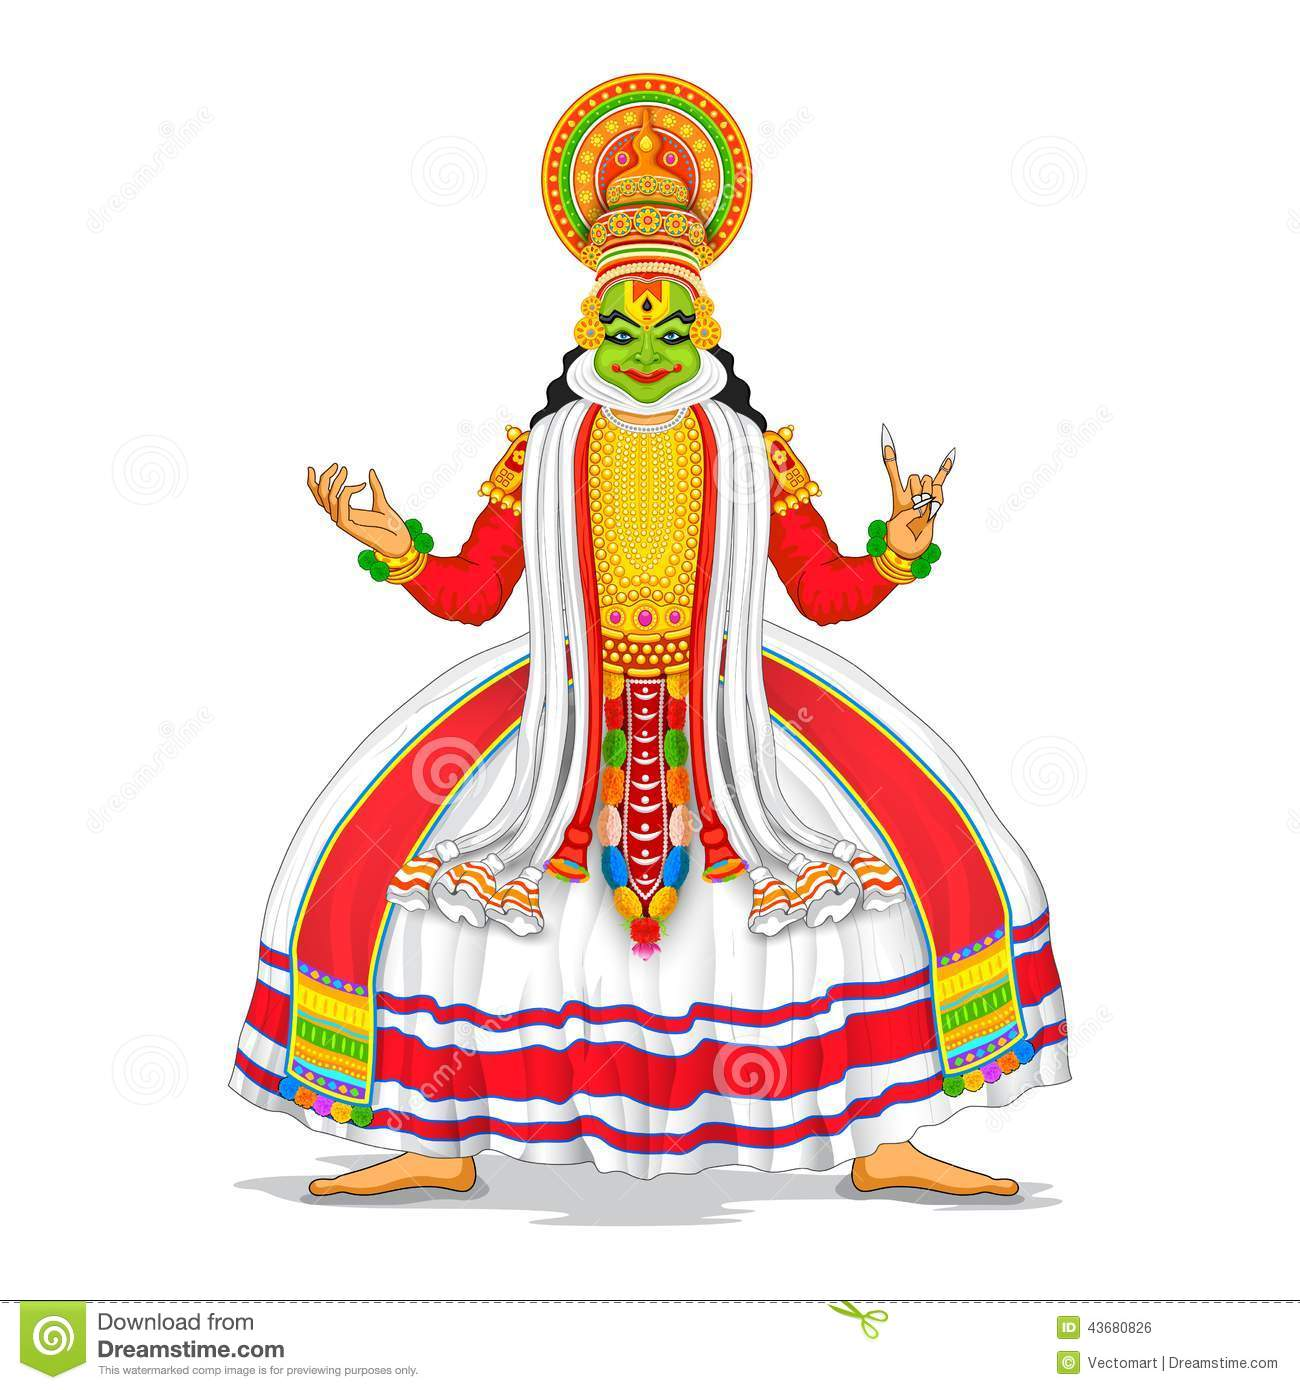 kathakali cartoons pictures illustrations - photo #29